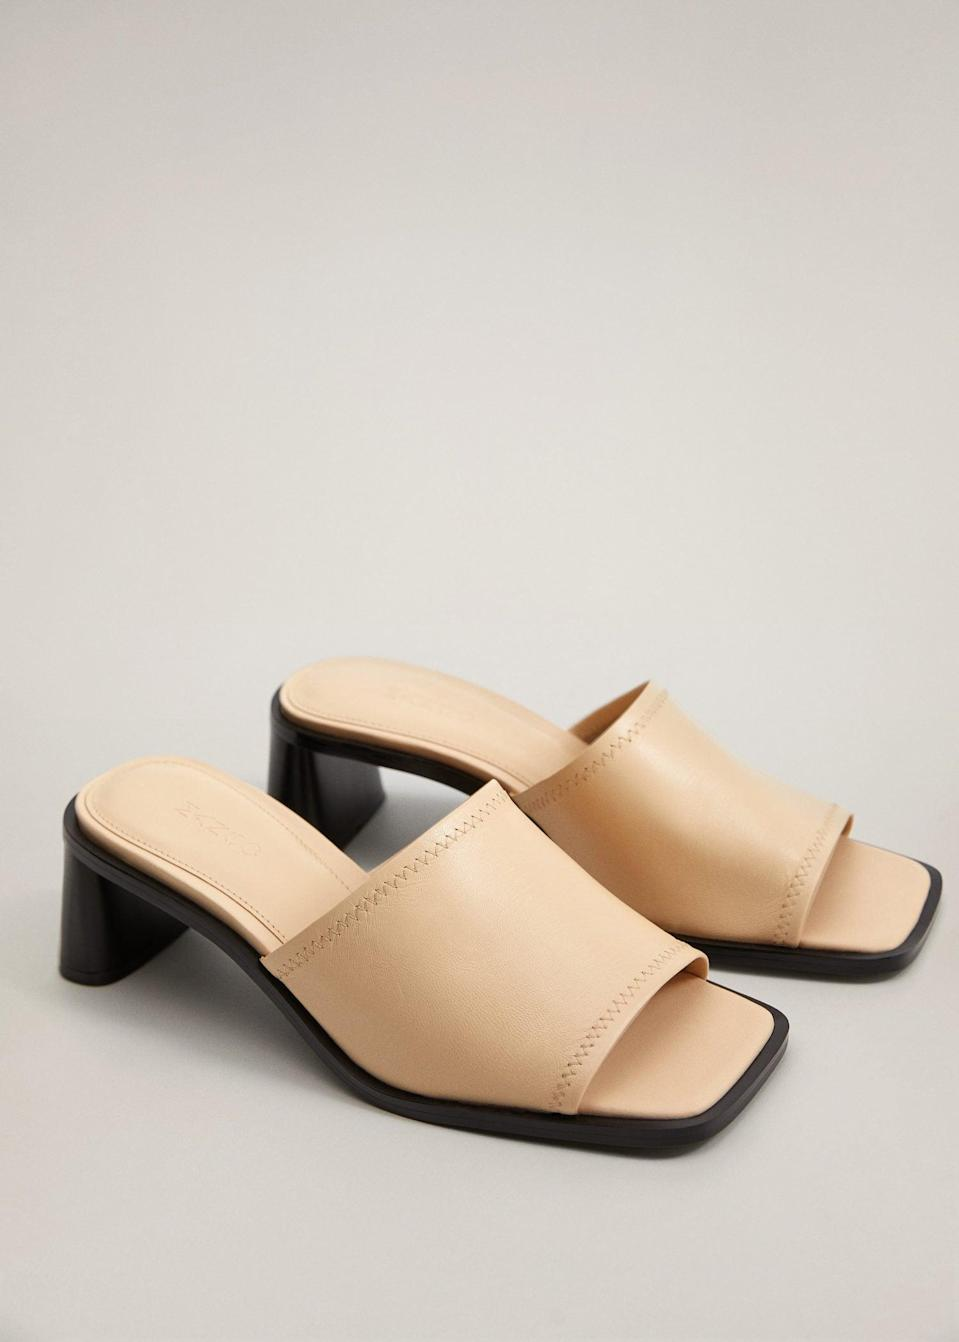 "$80, Mango. <a href=""https://shop.mango.com/us/women/shoes-heeled-sandals/heel-leather-mules_67005943.html"" rel=""nofollow noopener"" target=""_blank"" data-ylk=""slk:Get it now!"" class=""link rapid-noclick-resp"">Get it now!</a>"